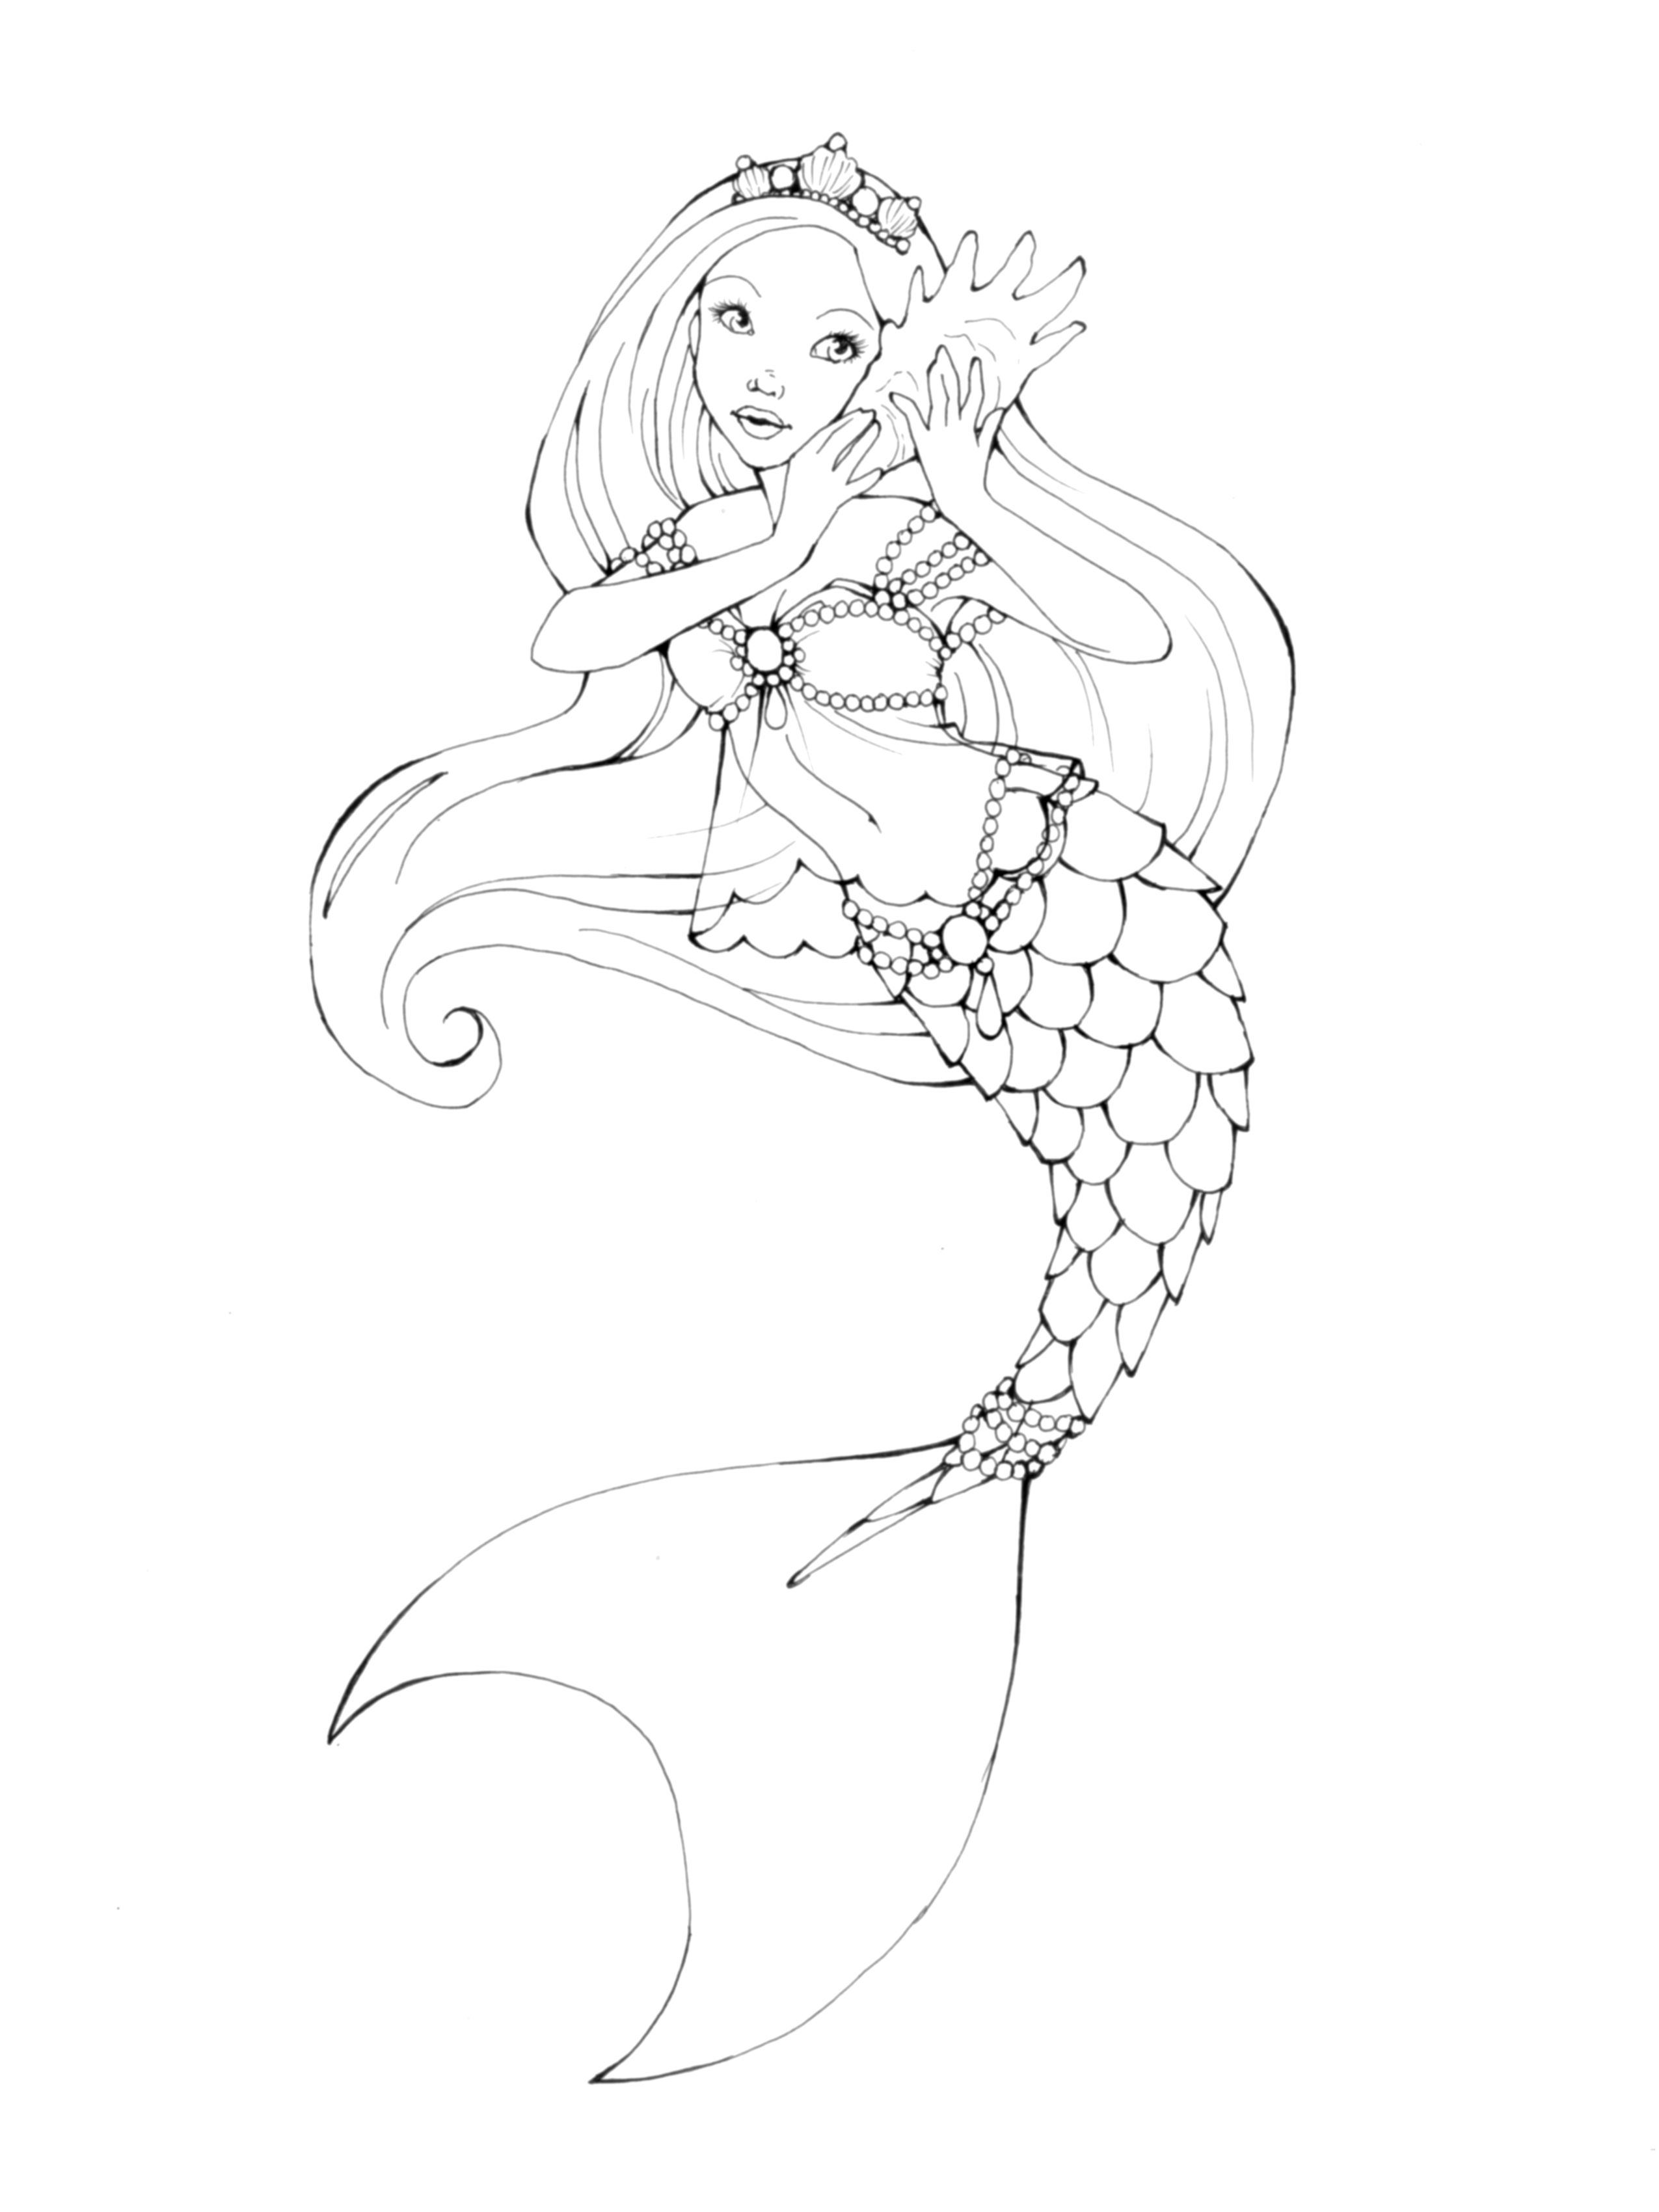 photo regarding Printable Mermaid Pictures named Printable Mermaid Coloring Internet pages Define coloring sheets